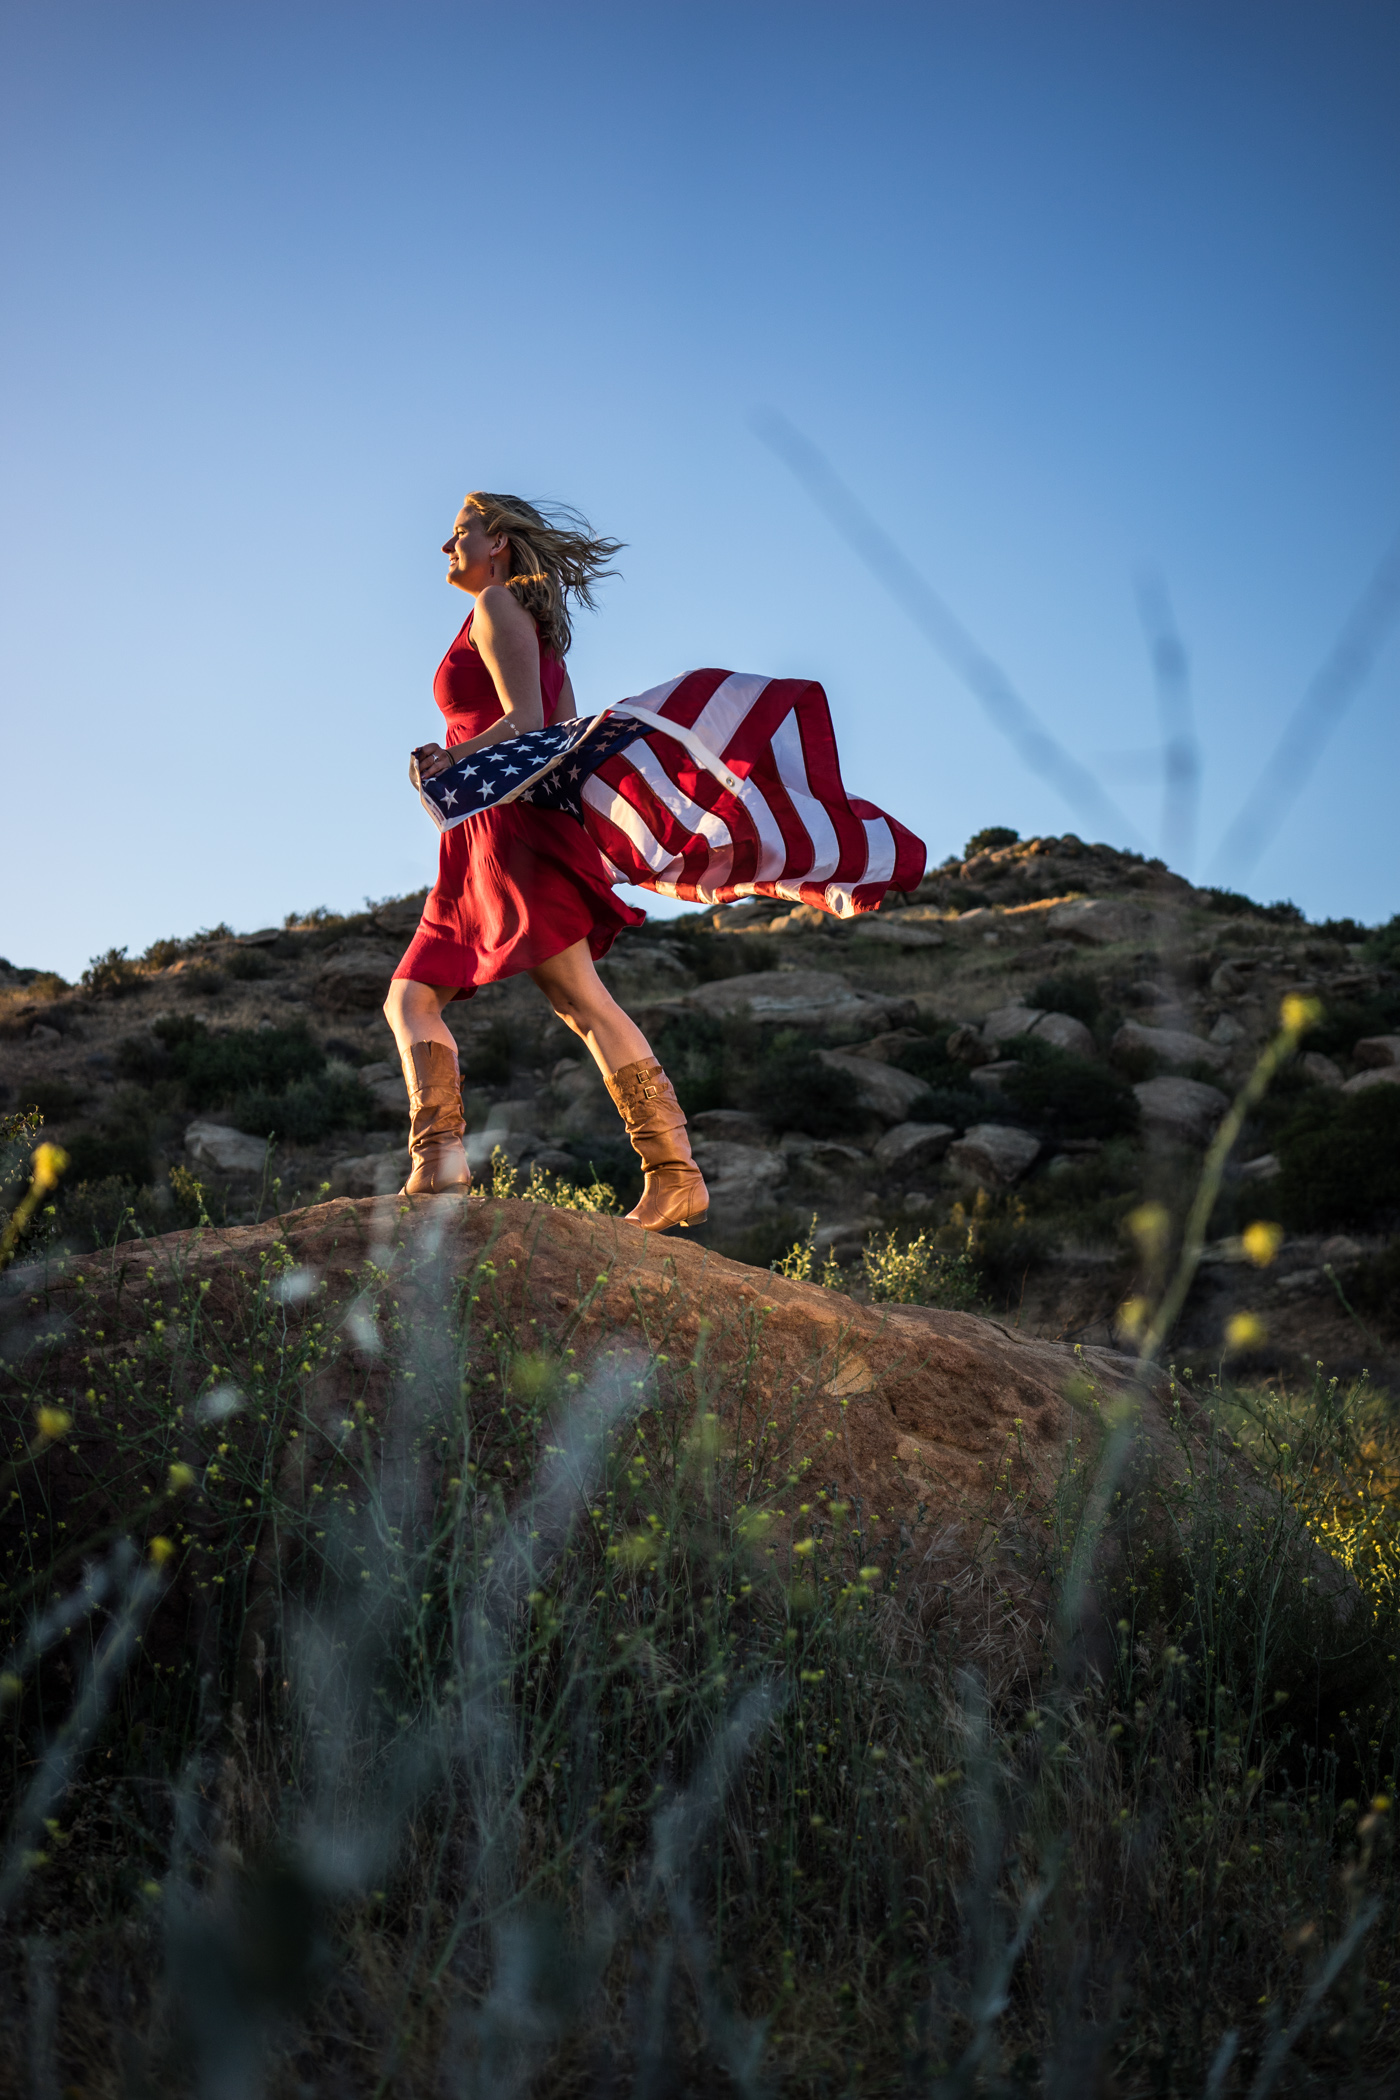 American woman and flag portrait in mountain landscape at sunset